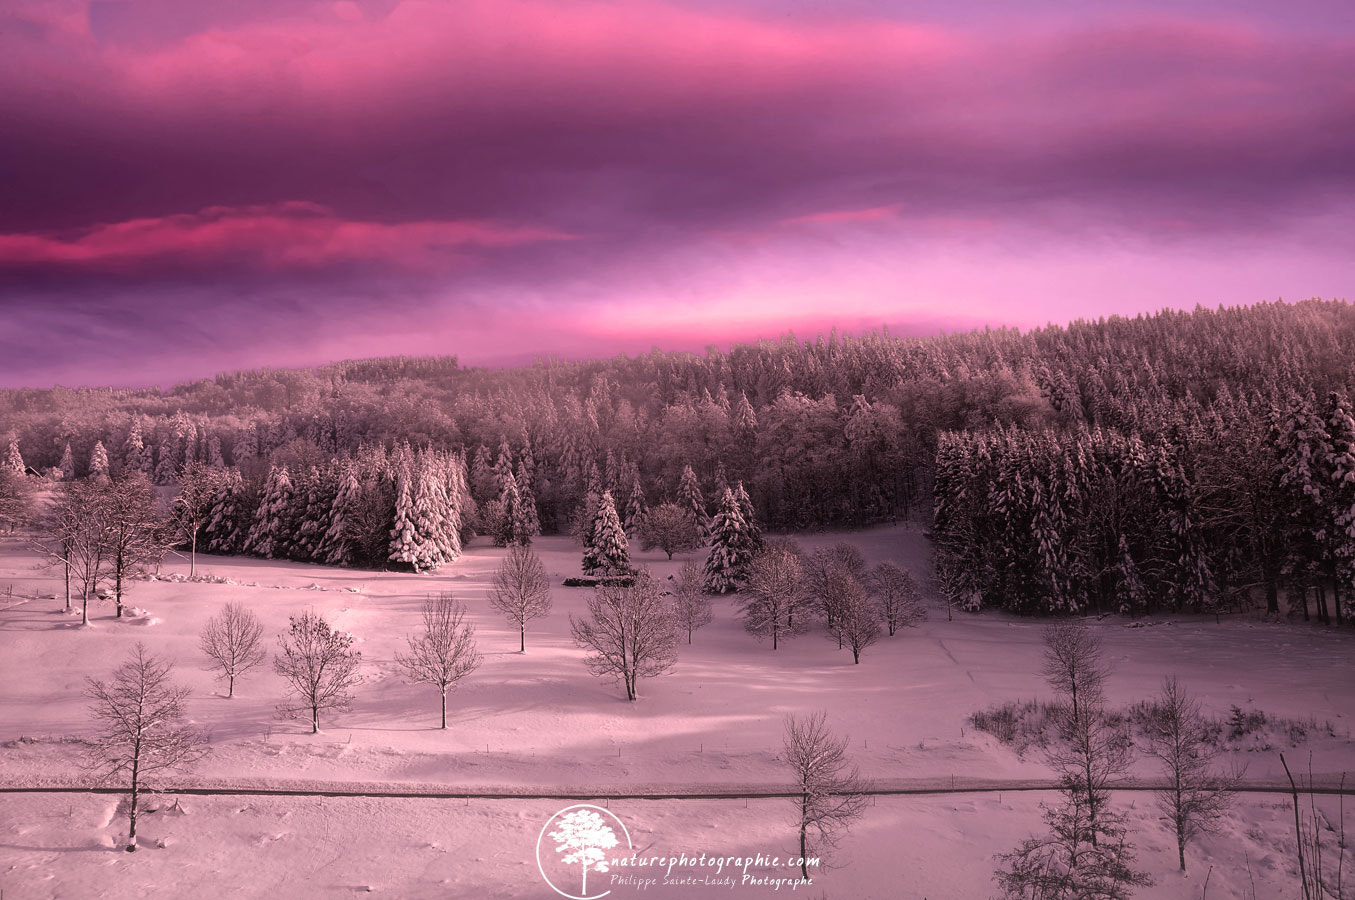 Photograph Pink Moment by Philippe Sainte-Laudy on 500px